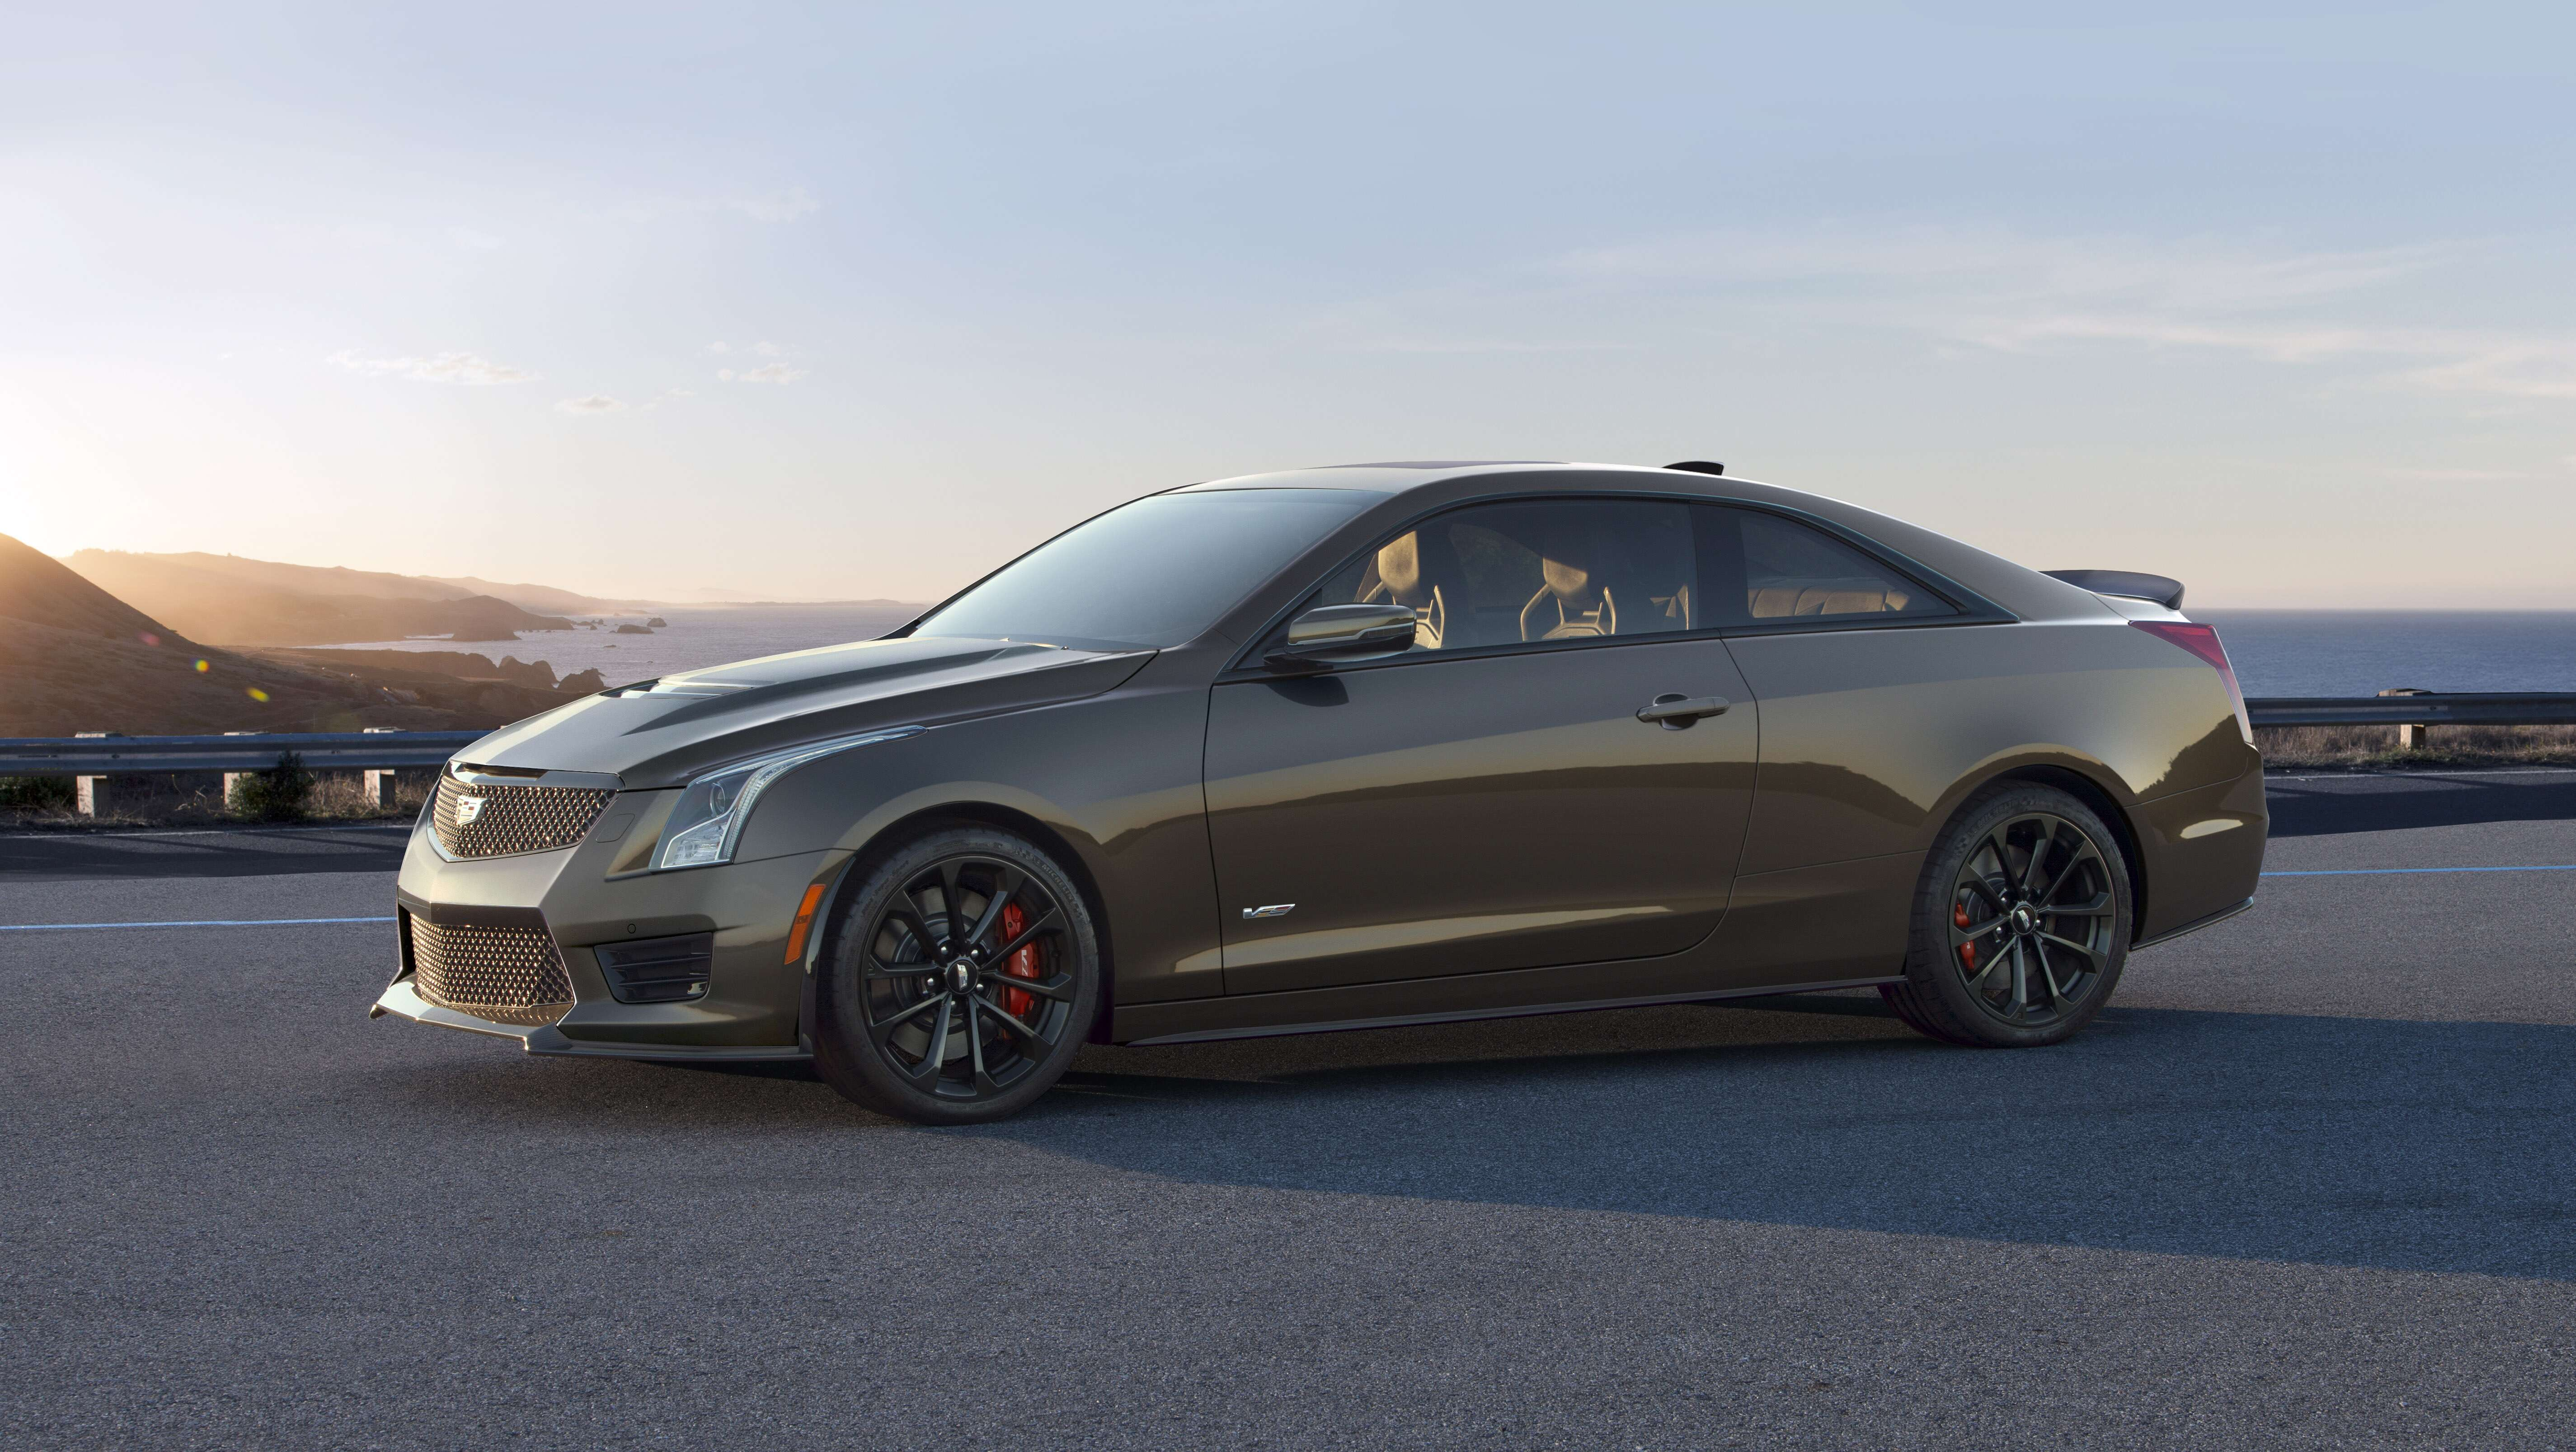 2019 cadillac v-series pedestal edition: the ultimate farewell to